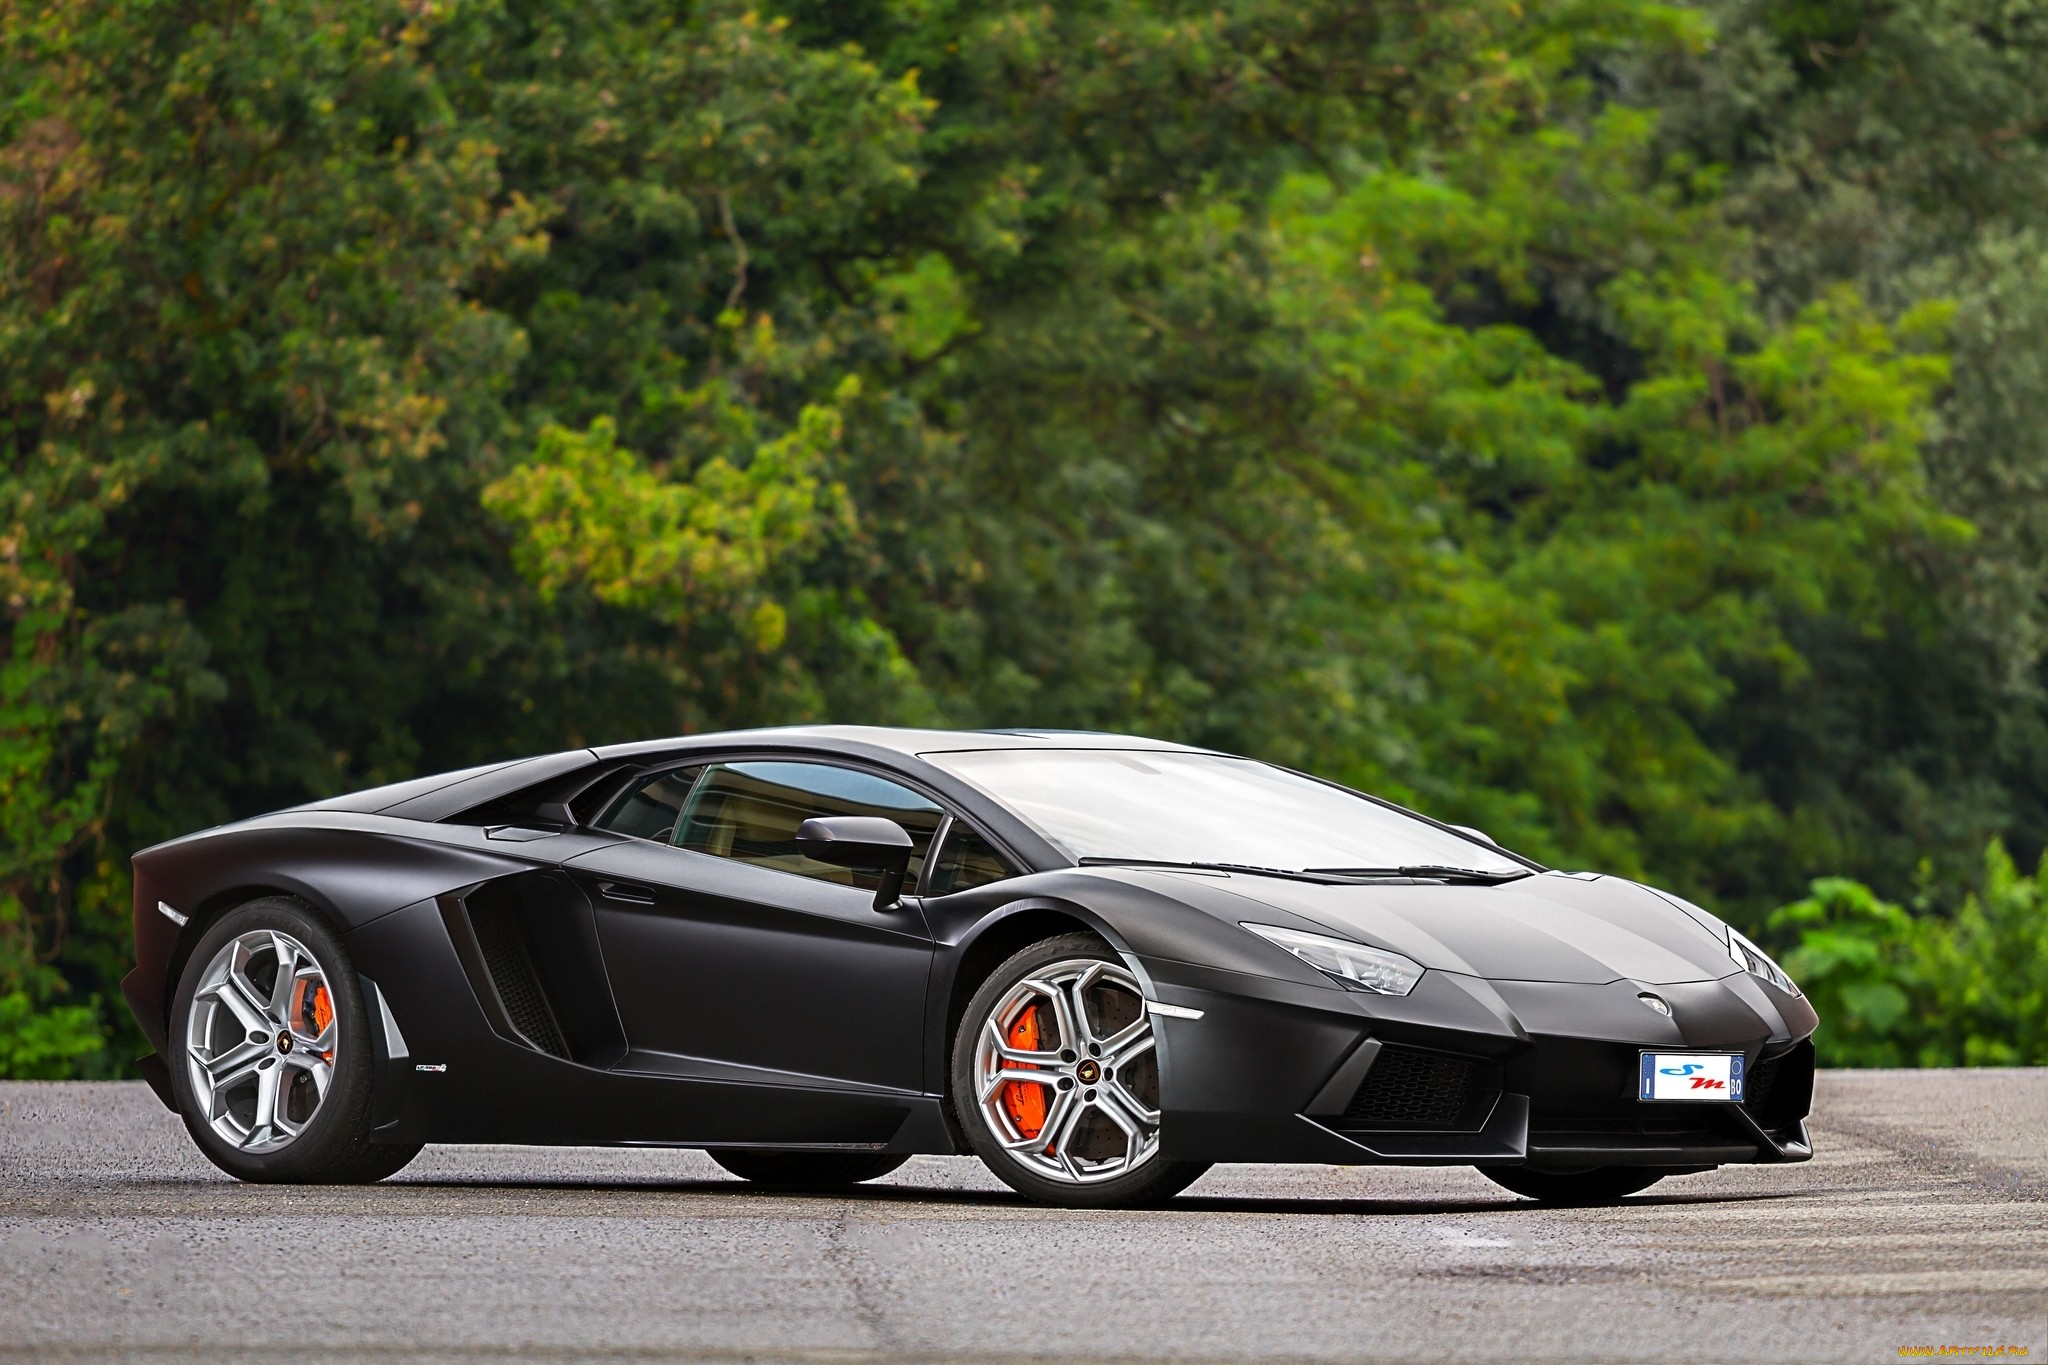 Expensive Cars Hd Wallpaper Expensive Cars Hd Car Wallpapers - Car Wallpaper Download , HD Wallpaper & Backgrounds